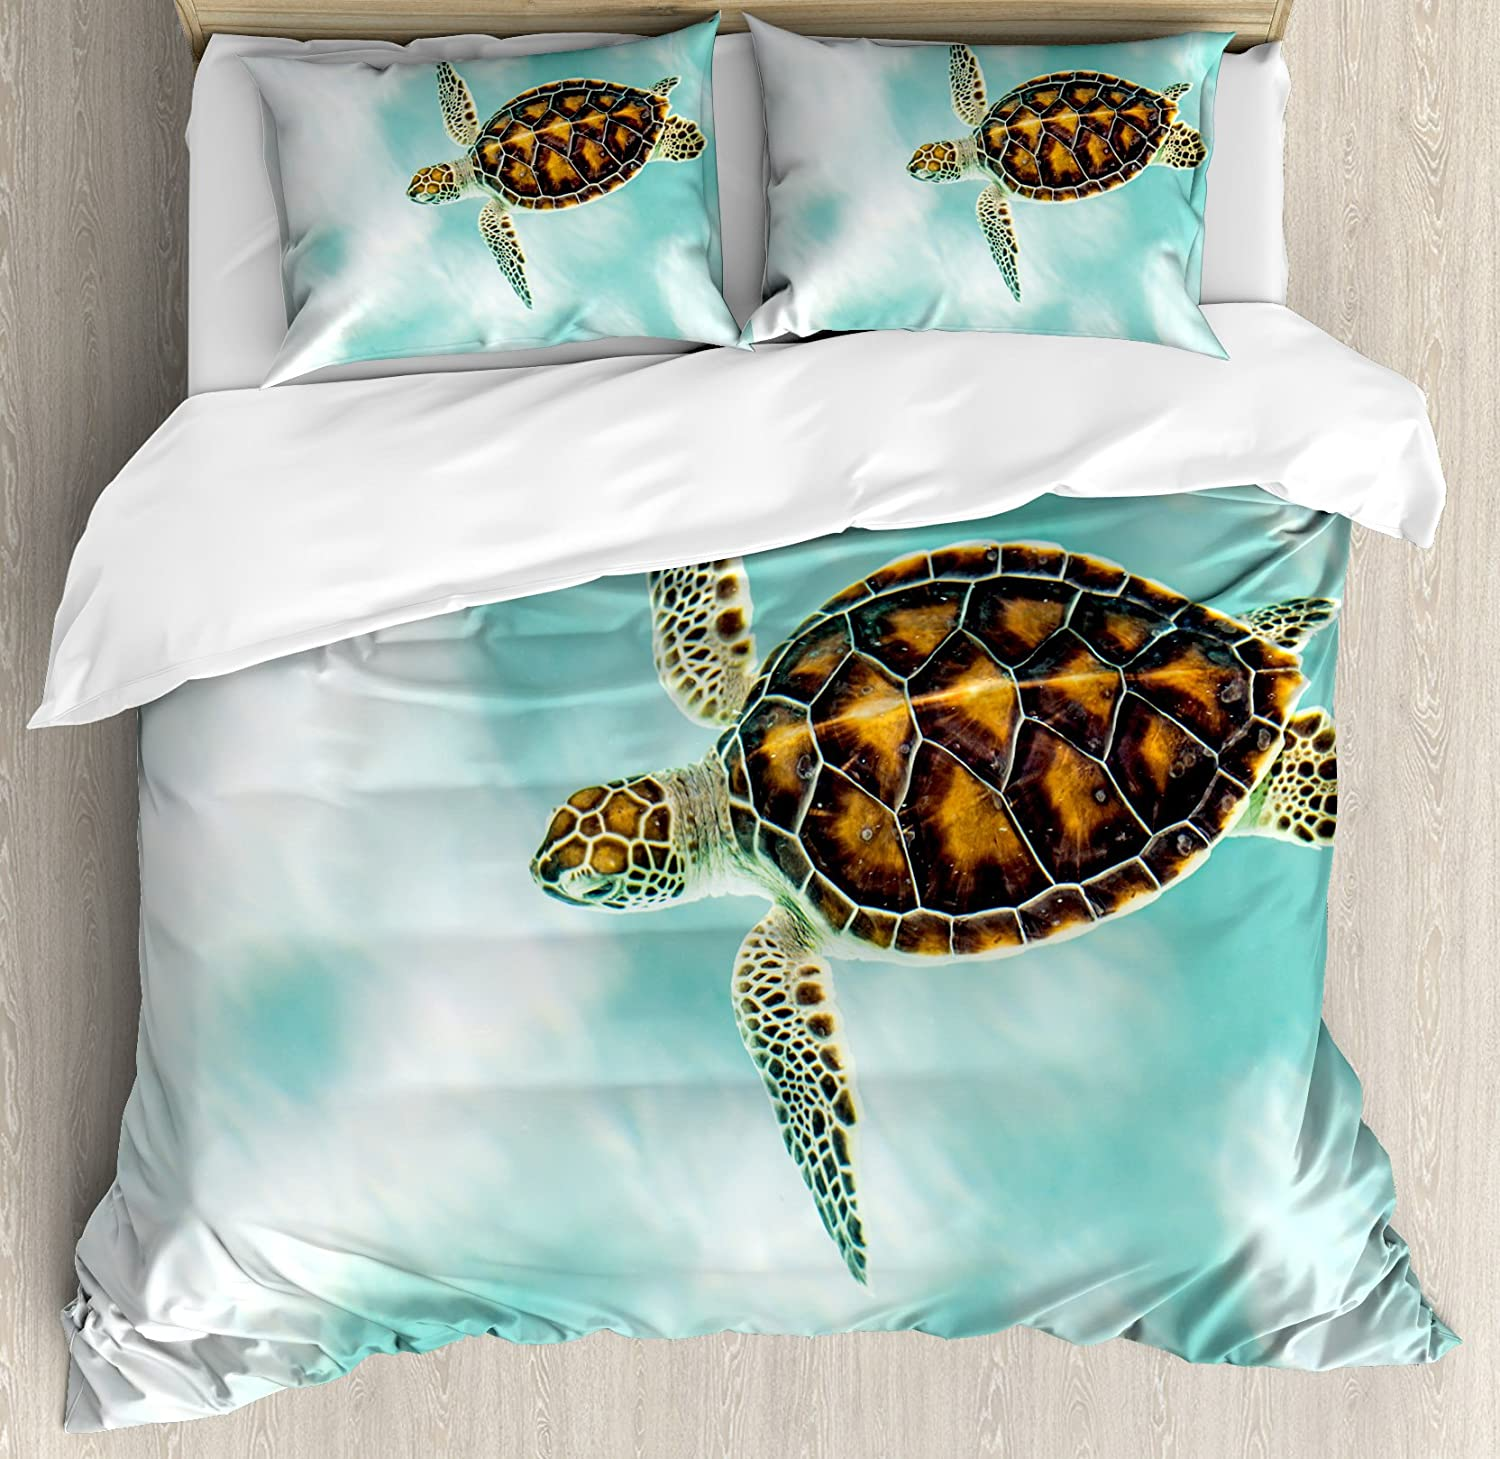 Ambesonne Turtle Duvet Cover Set, Baby Turtle Swimming in Abstract Waters Serene Nature Picture, Decorative 3 Piece Bedding Set with 2 Pillow Shams, Queen Size, Coffee Seafoam